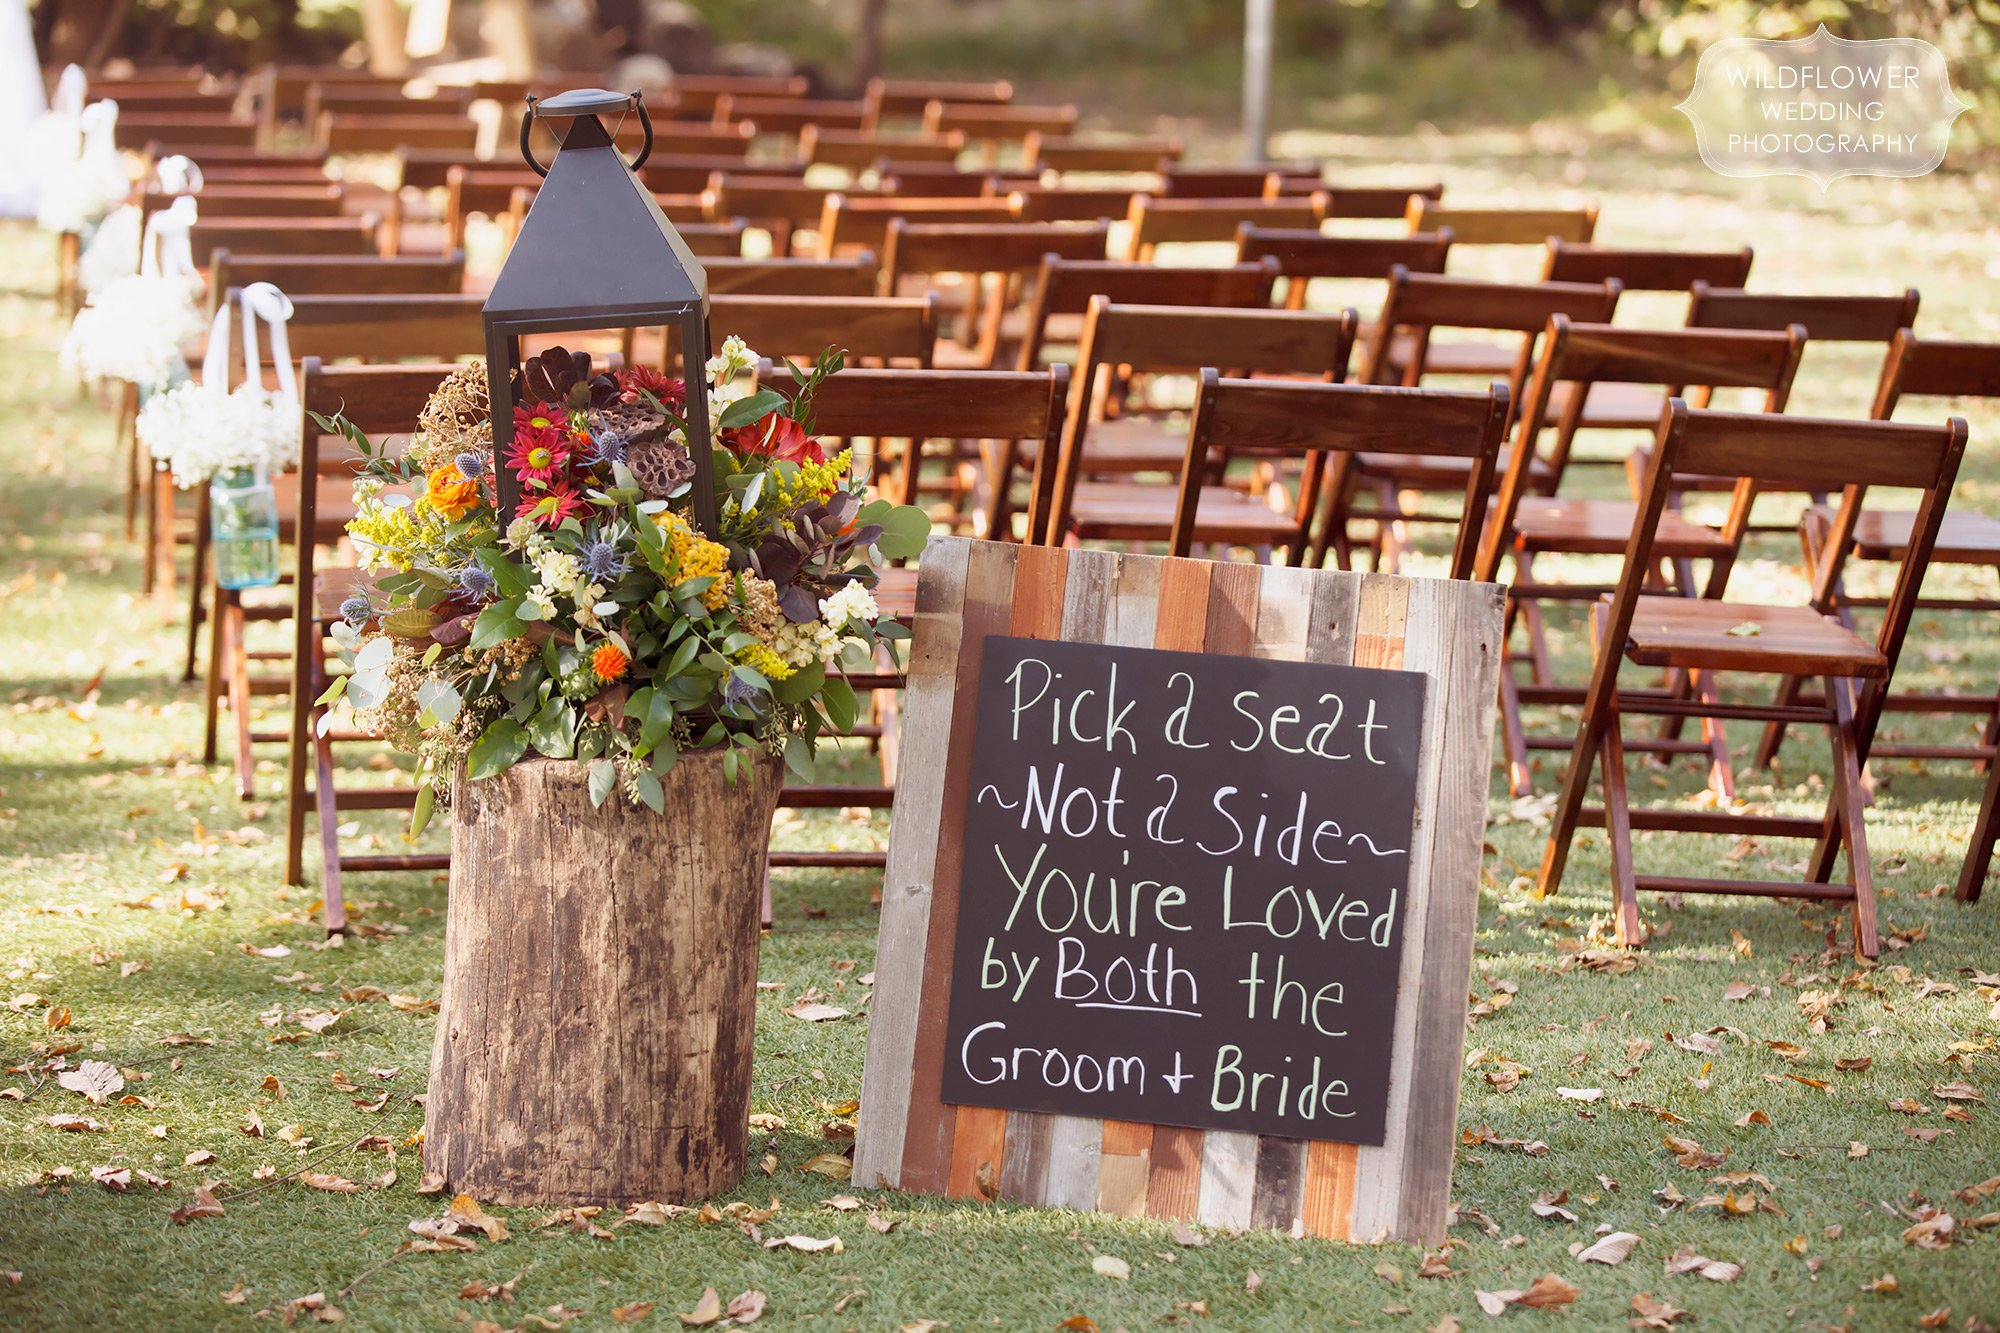 Schwinn produce farm fall wedding in leavonworth ks in october october wedding wooden sign at the schwinn produce farm venue just north of kc mo junglespirit Images